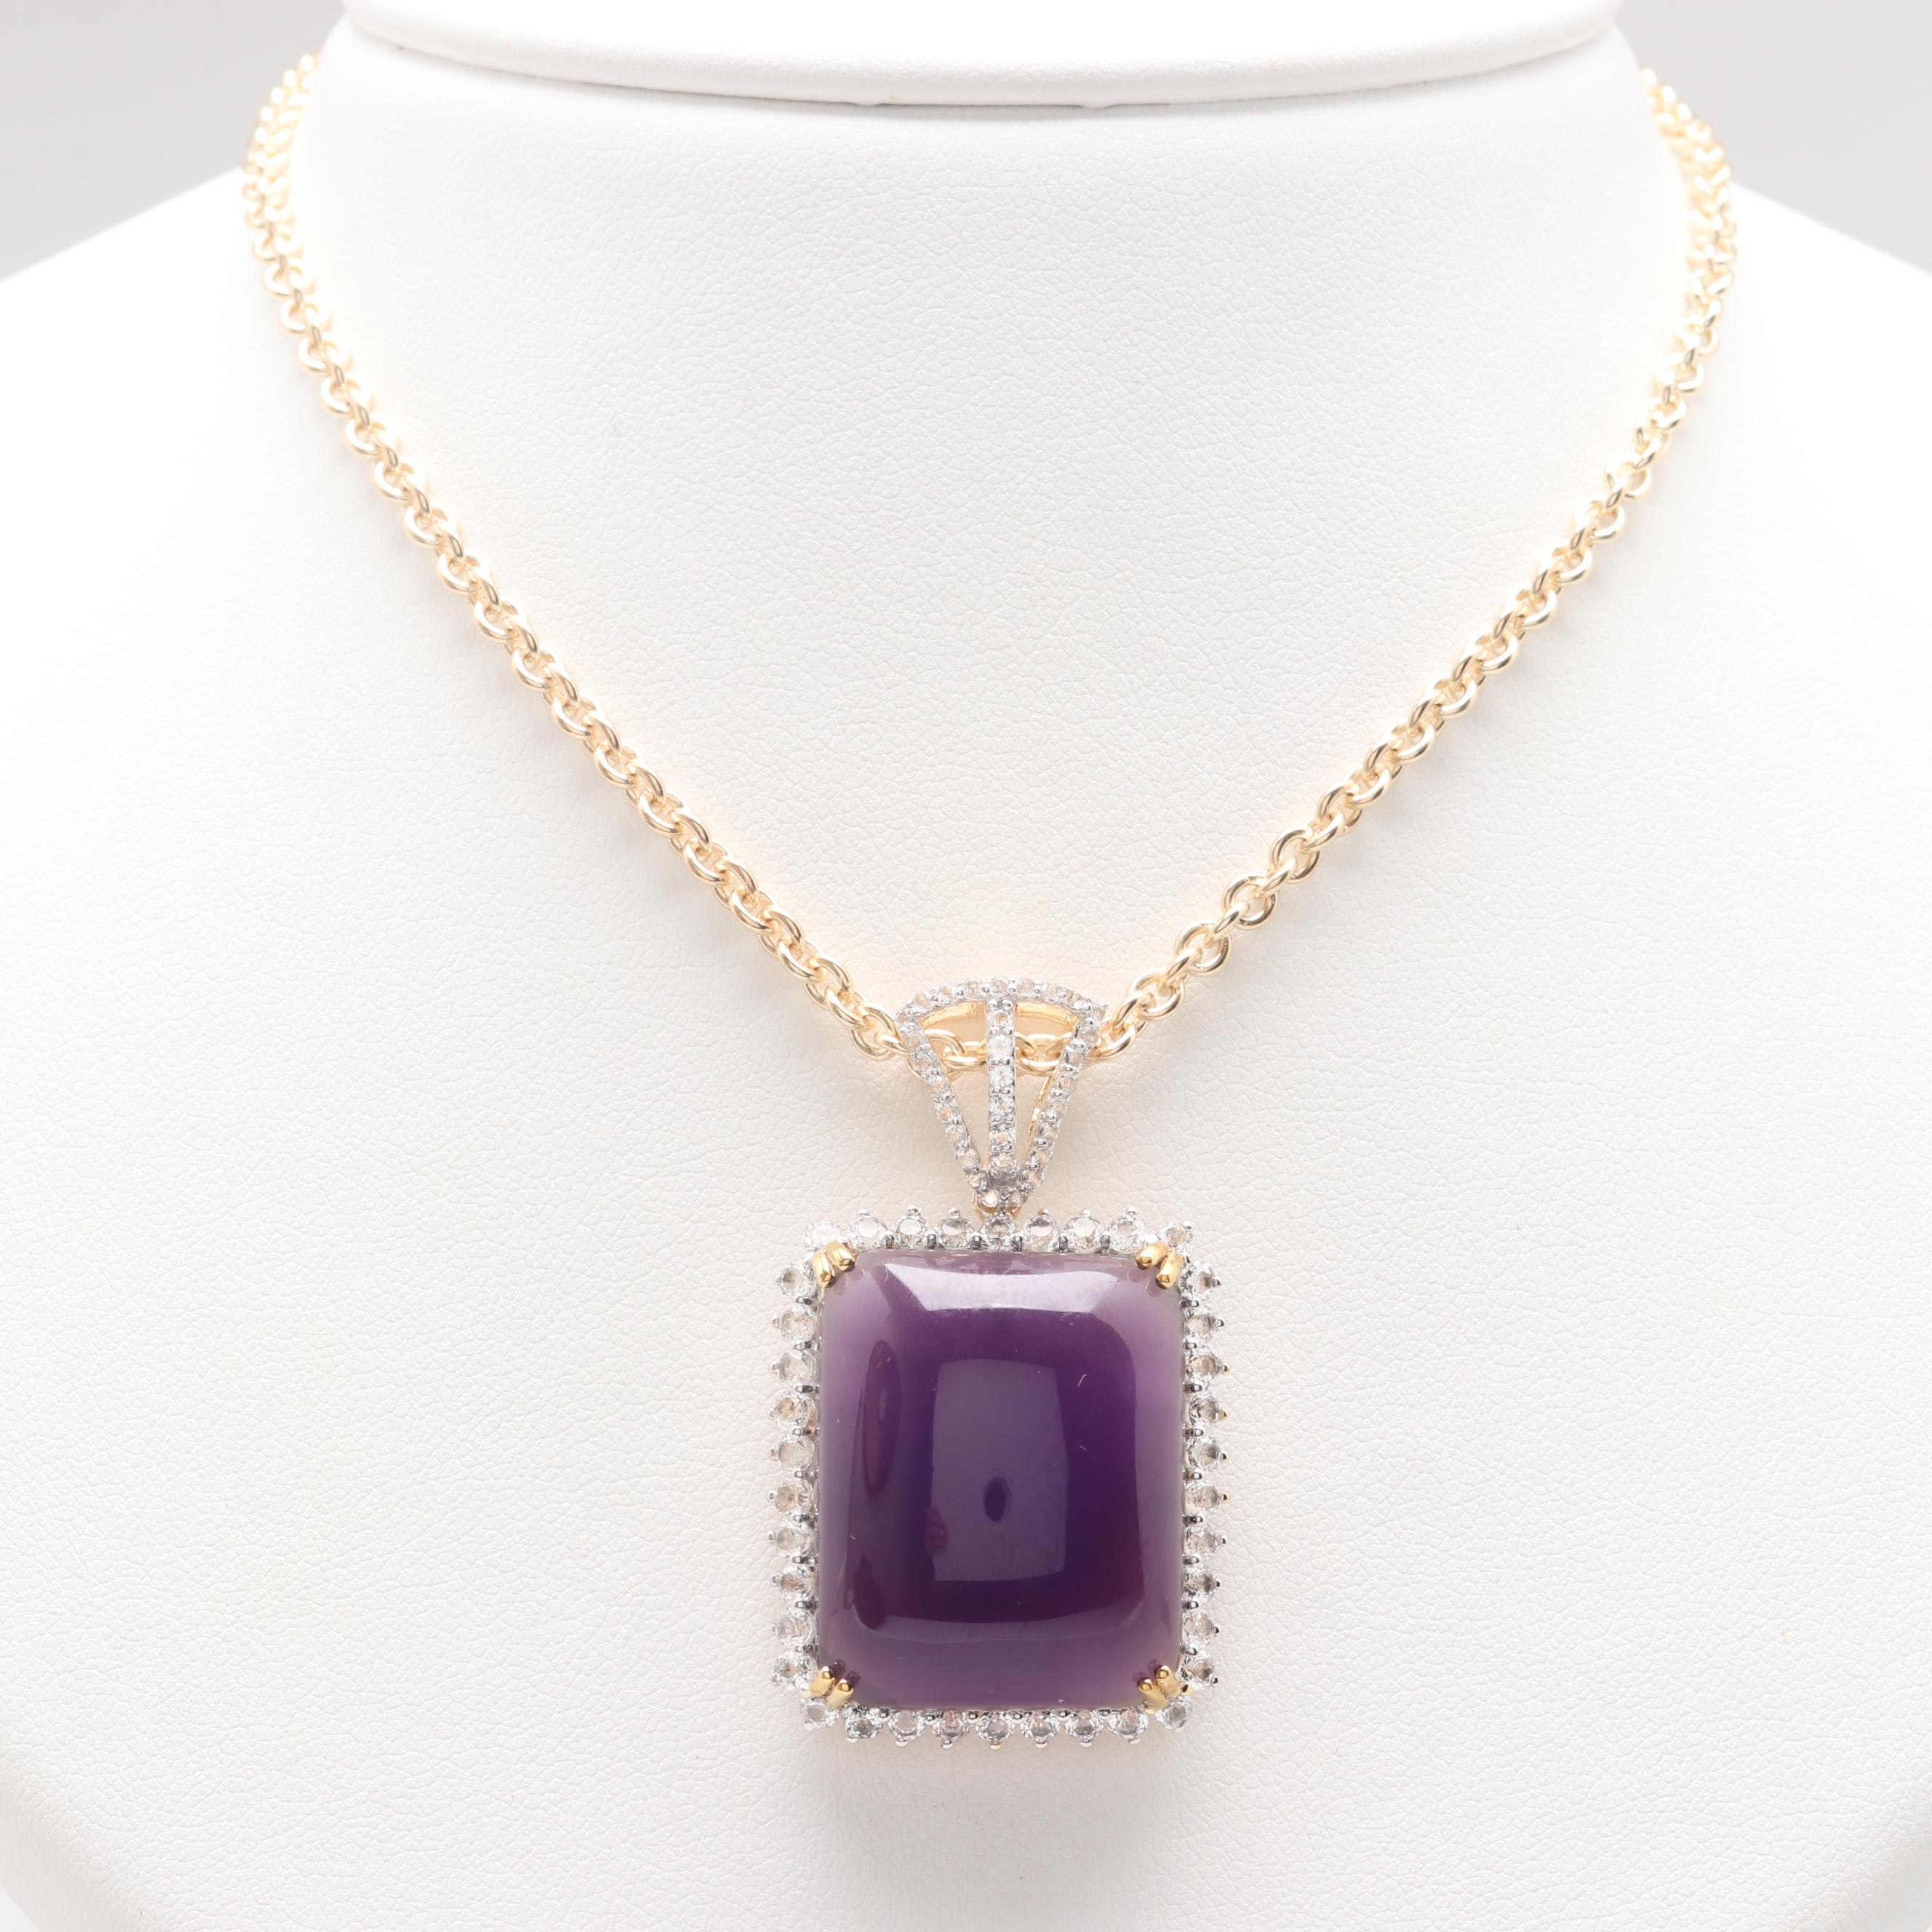 Gold Wash on Sterling Silver Amethyst and White Topaz Pendant Necklace